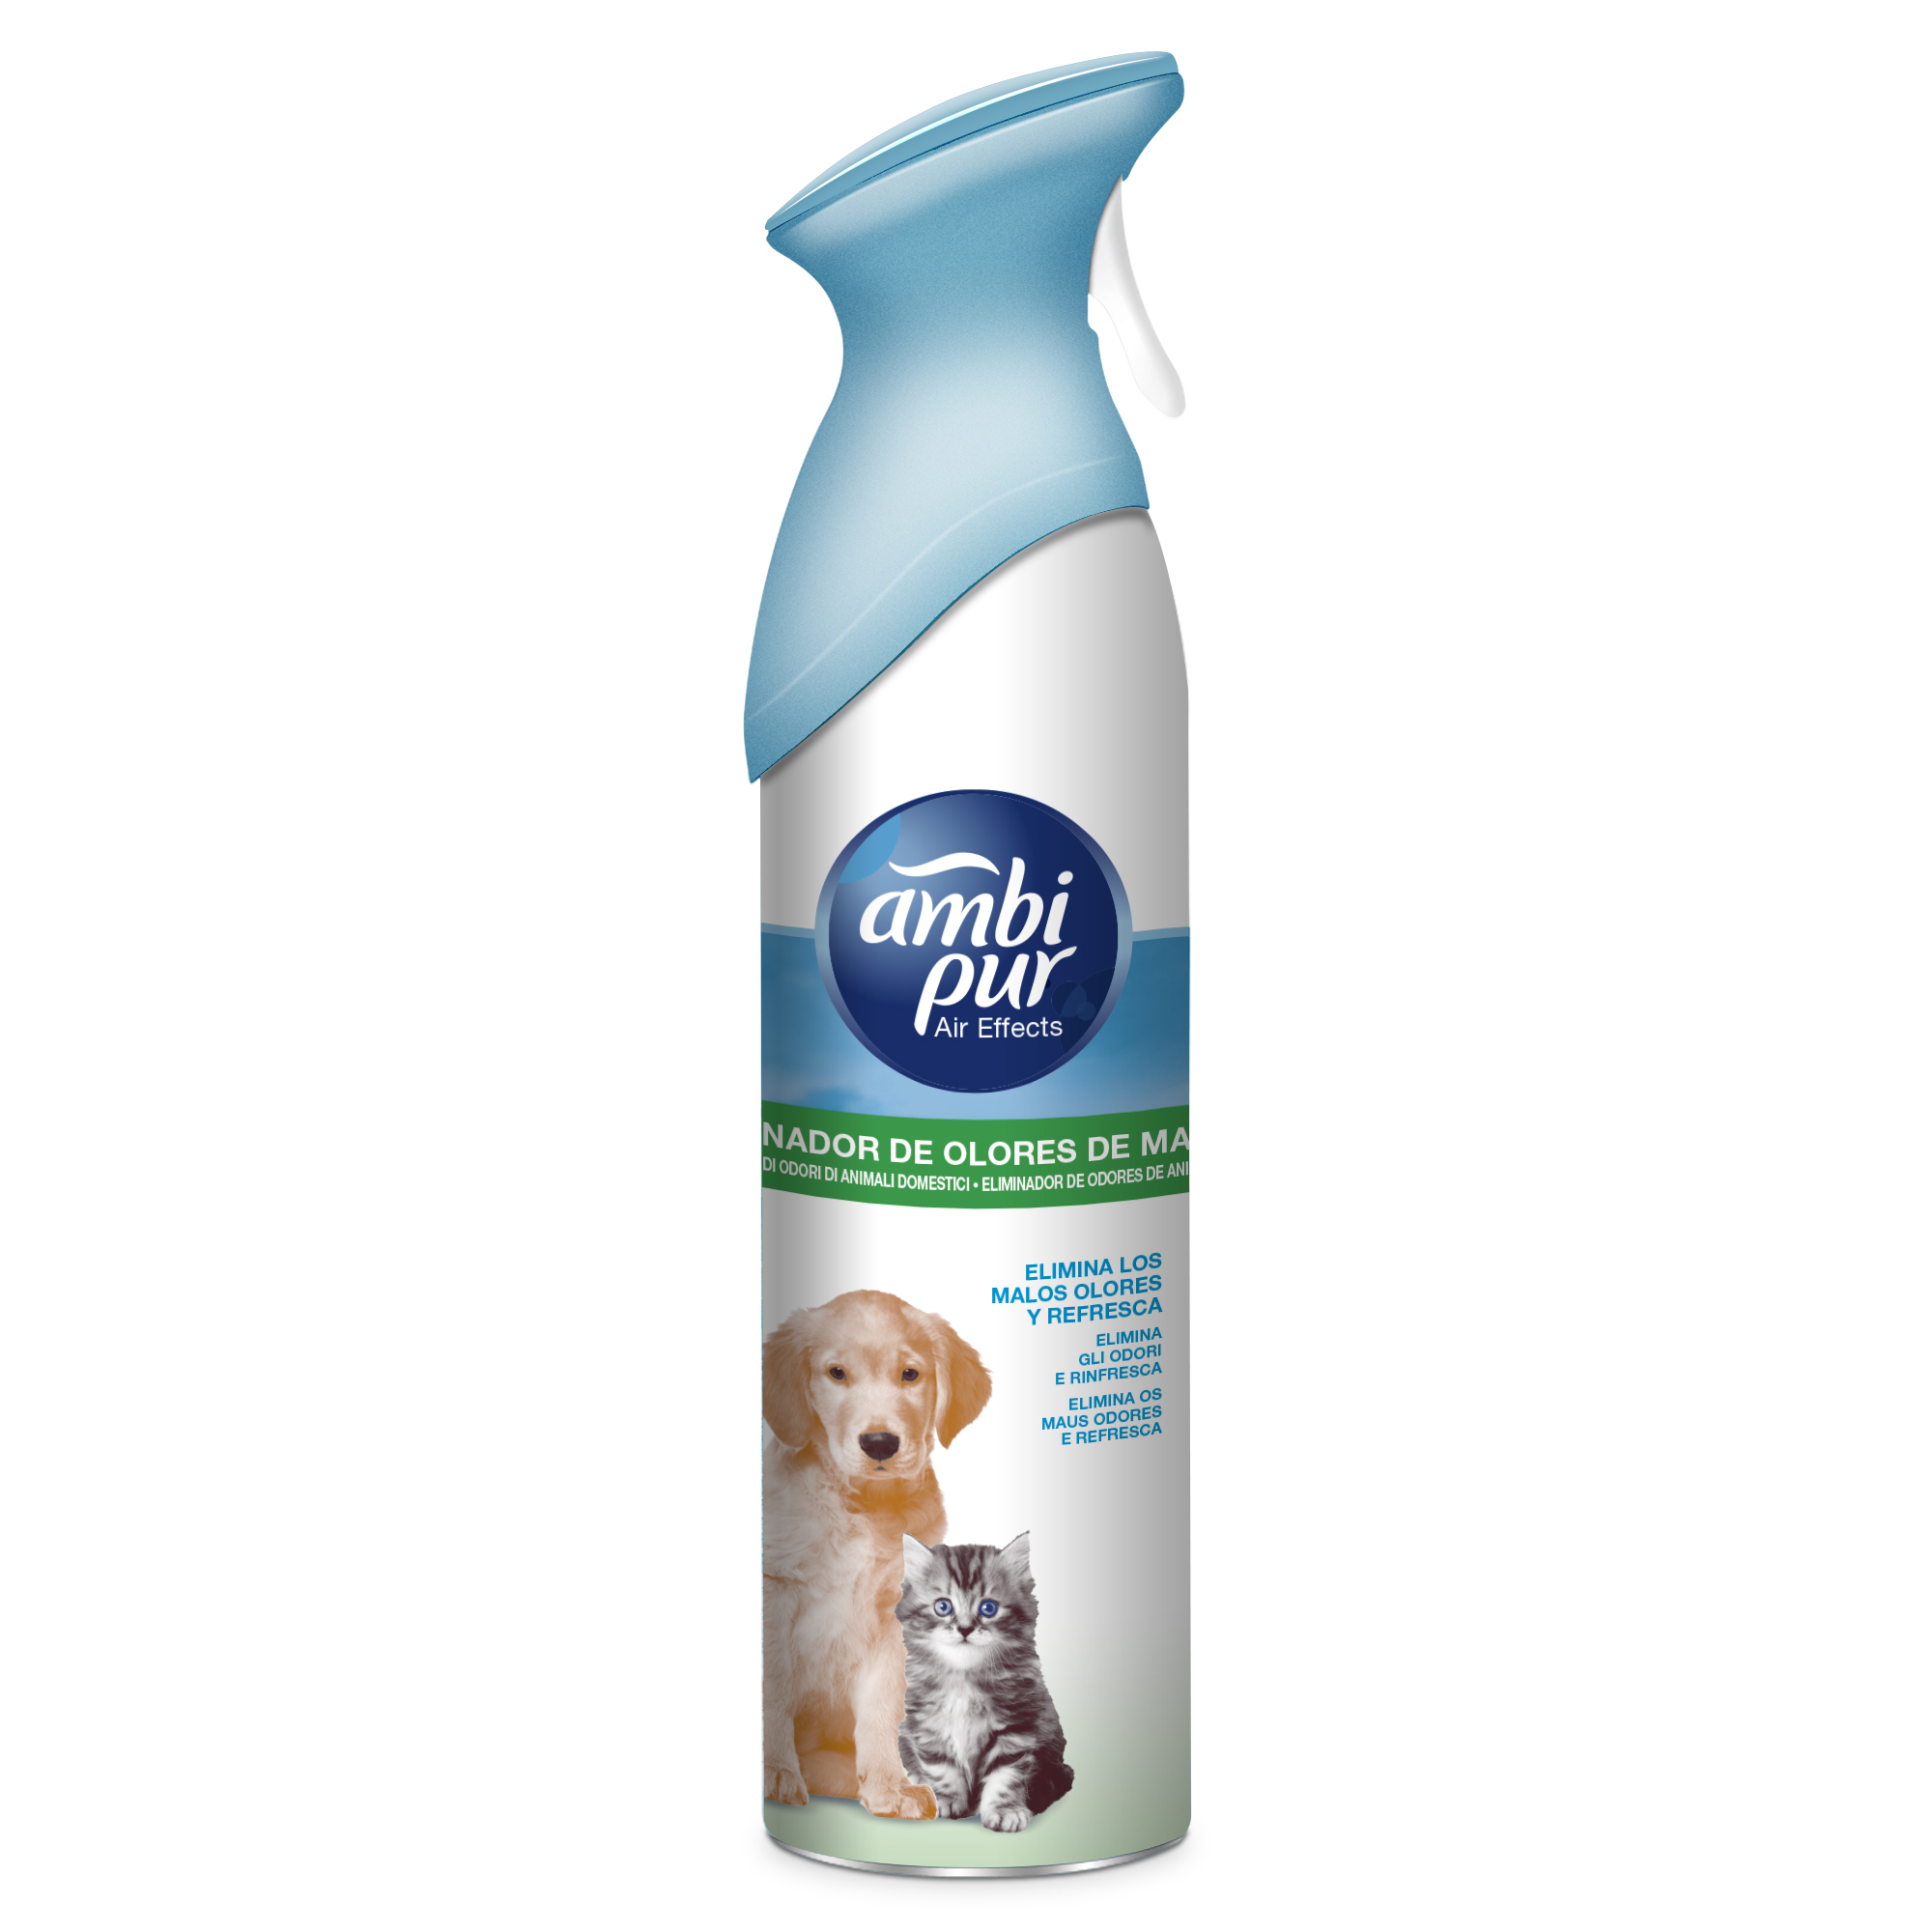 AMBIPUR AIR EFFECTS PET CARE 300ml